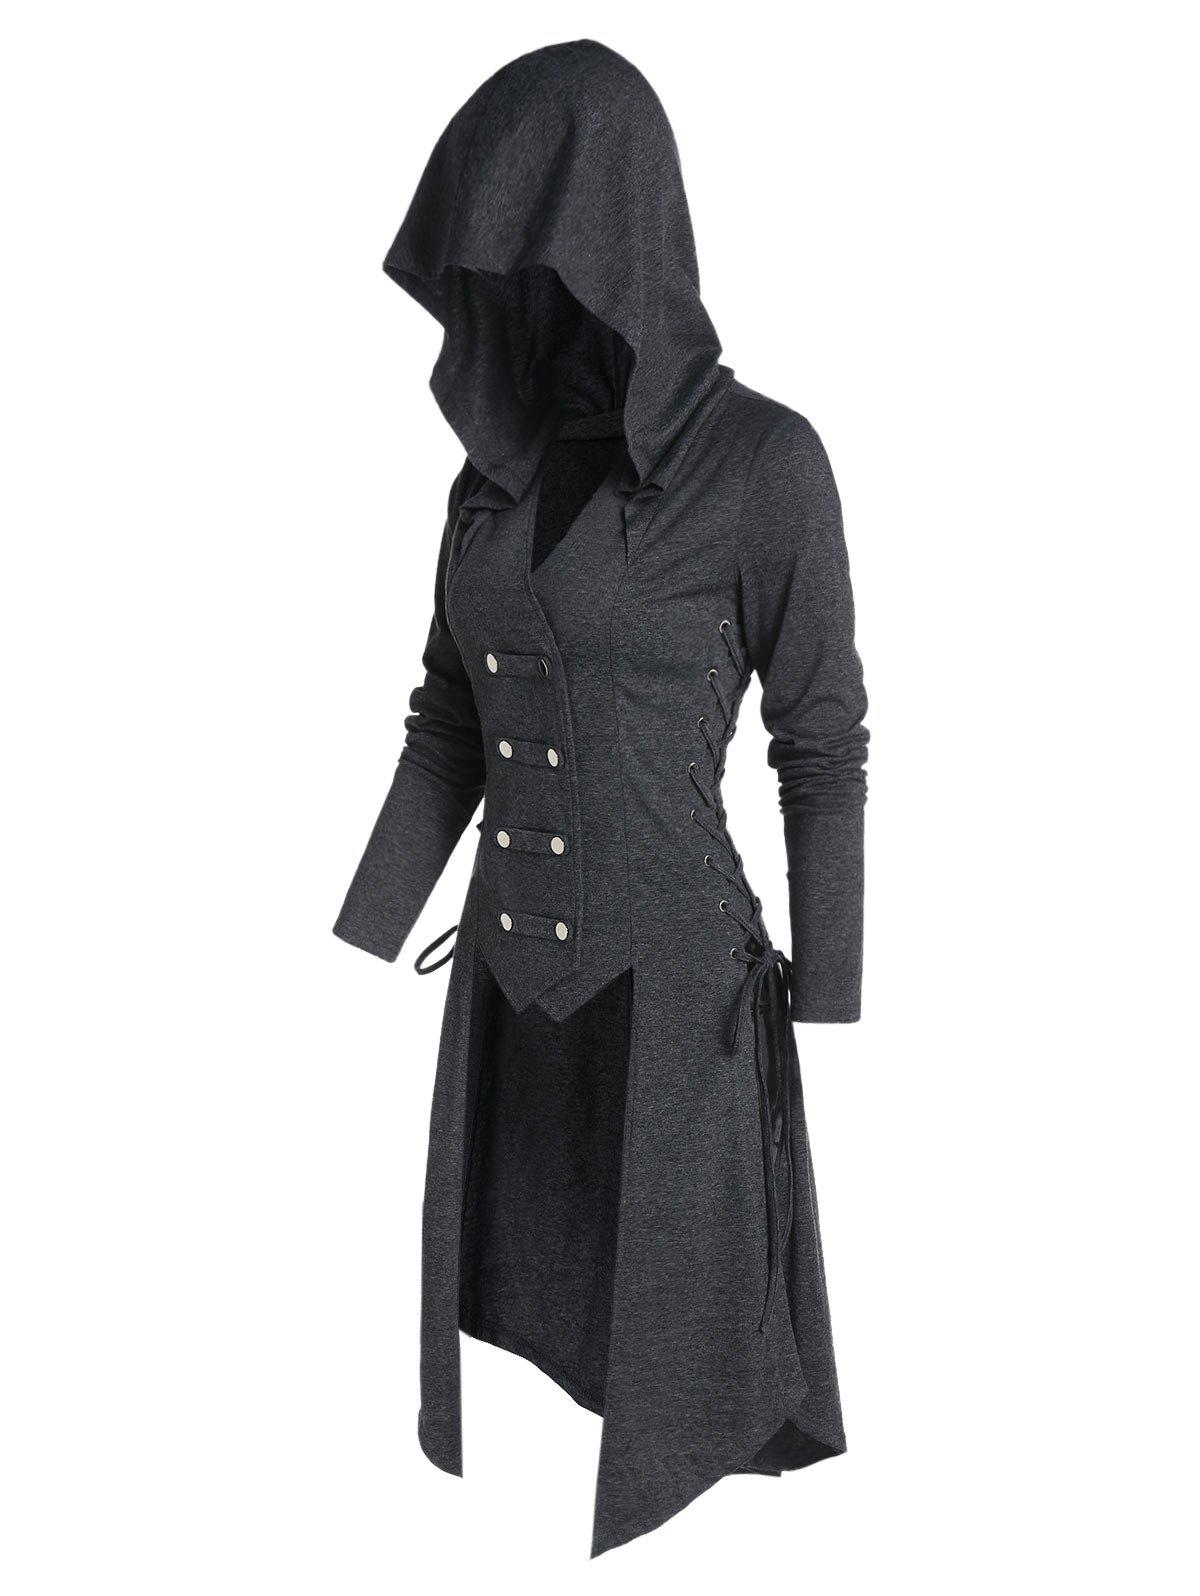 Hooded Lace-up Button Up High Low Steampunk Coat - CARBON GRAY 3XL